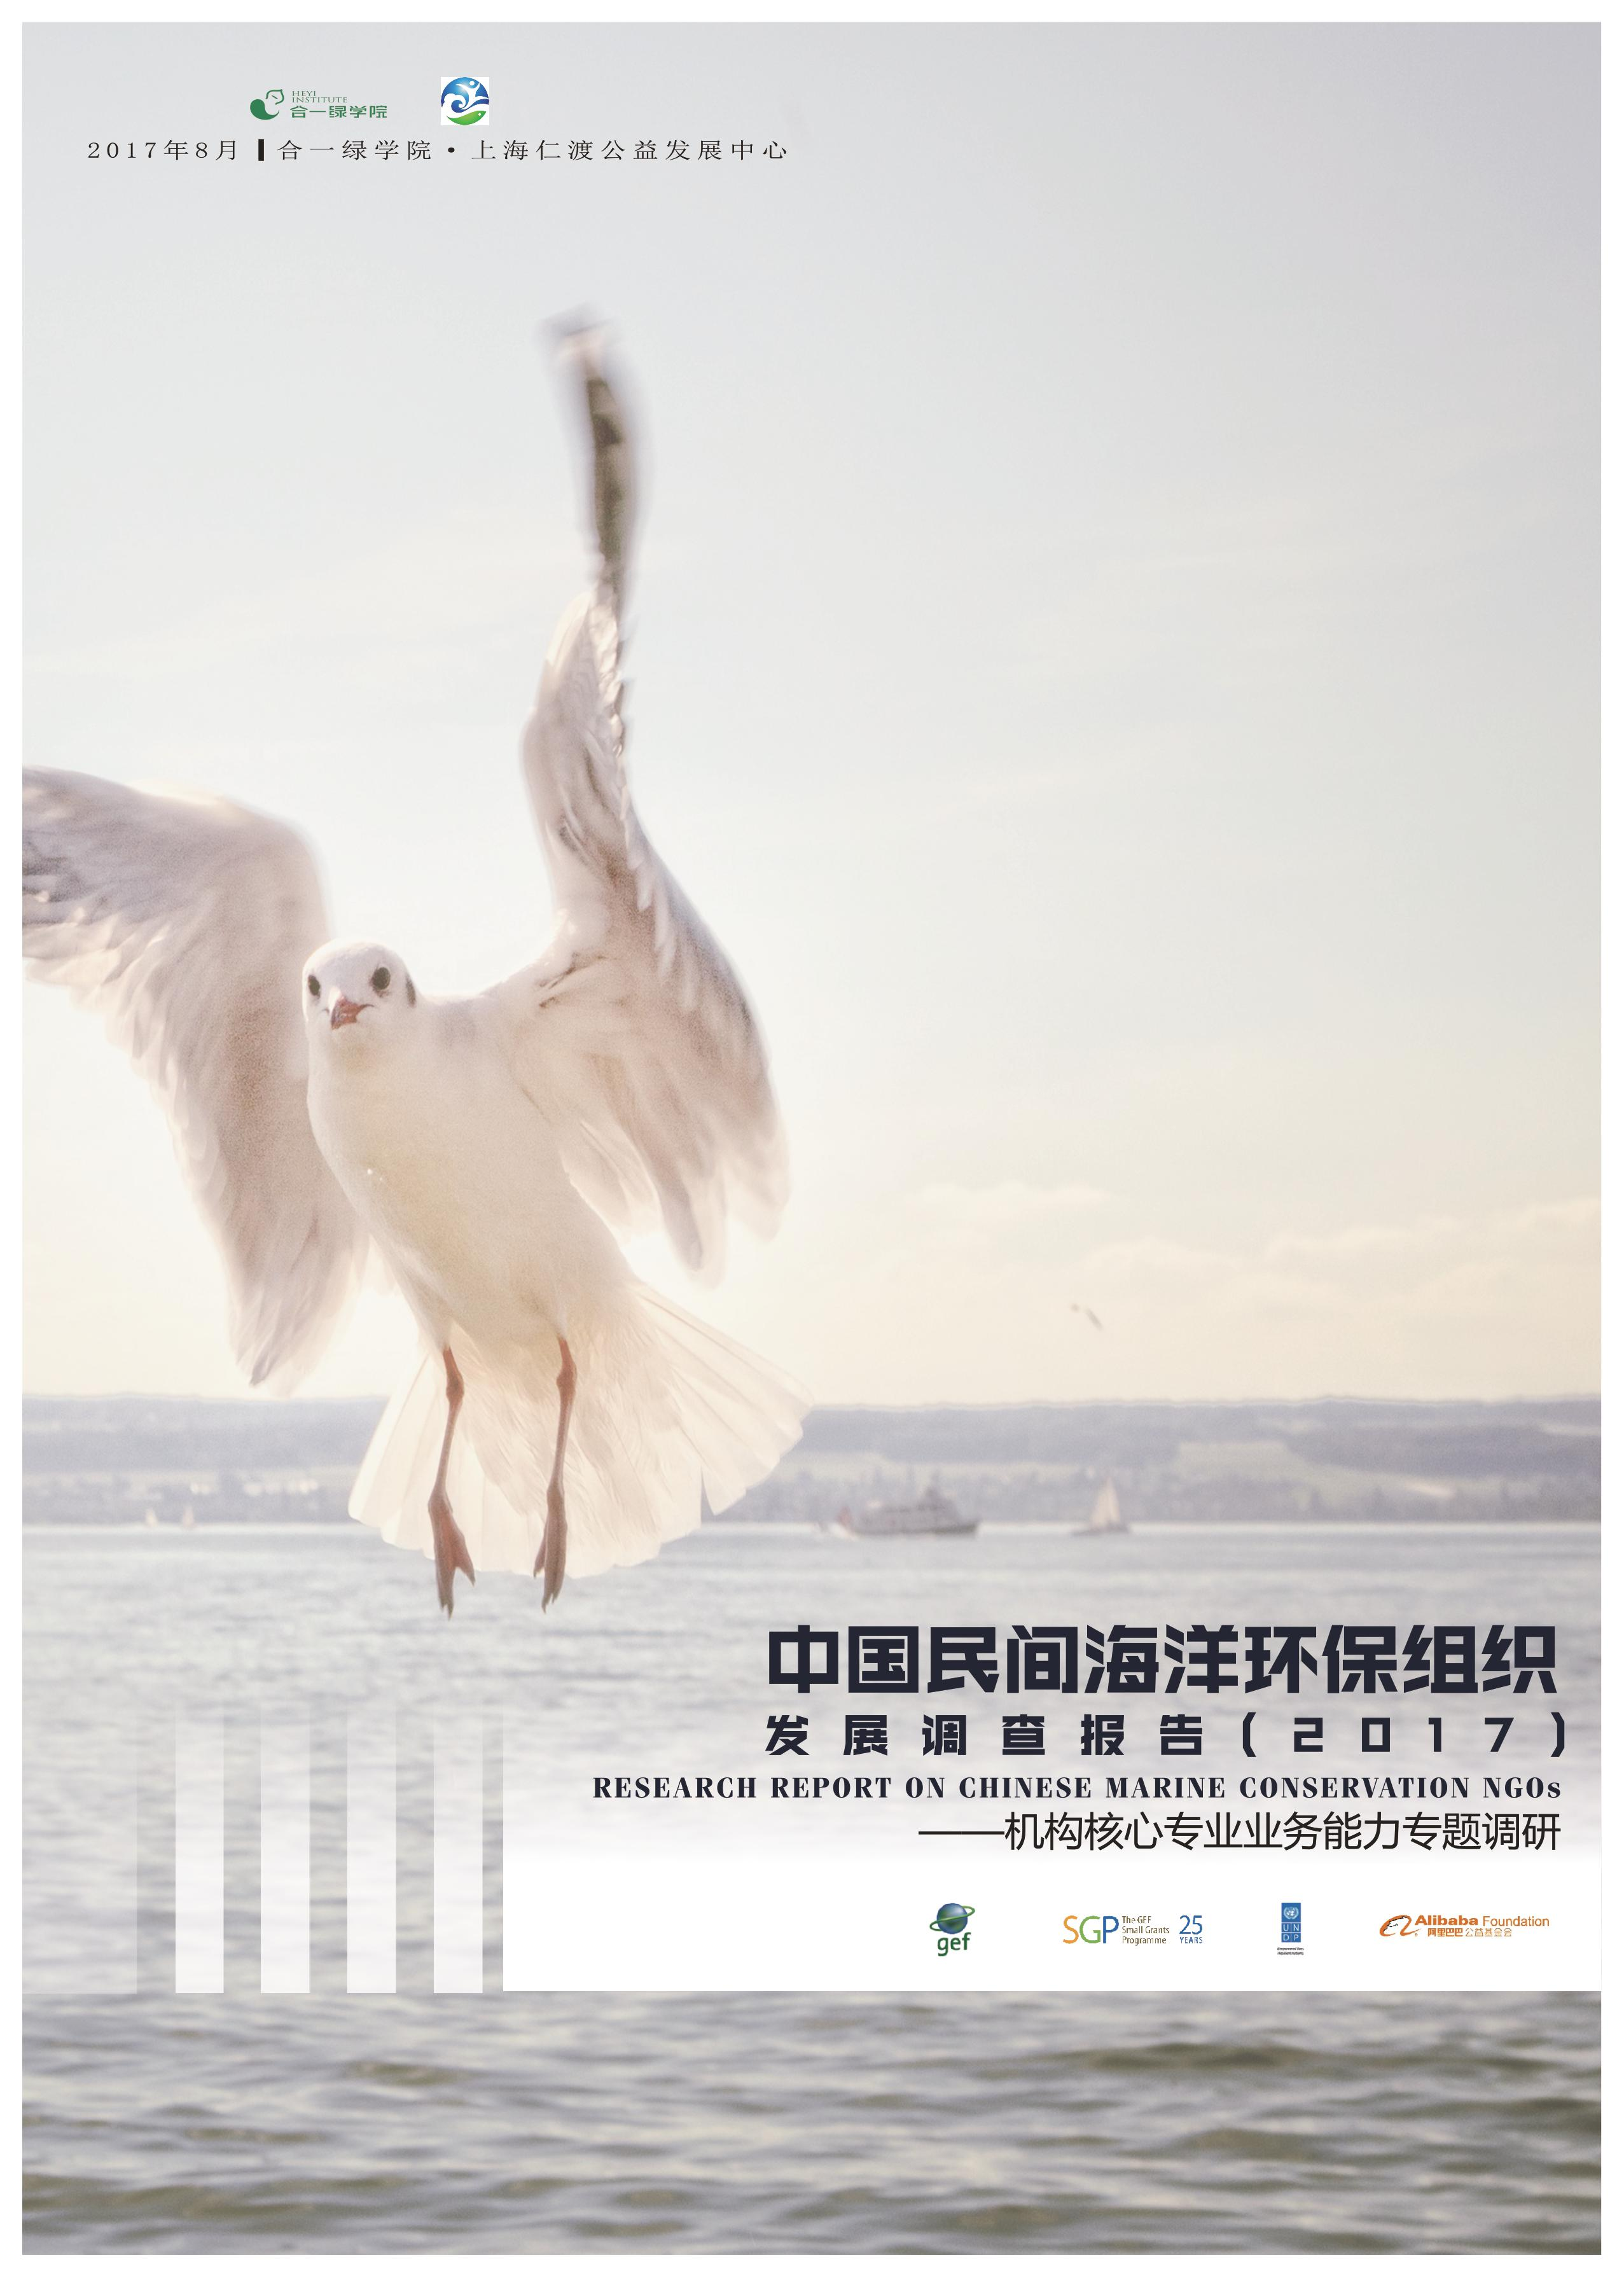 Research Report on Chinese Marine Conservation NGOs